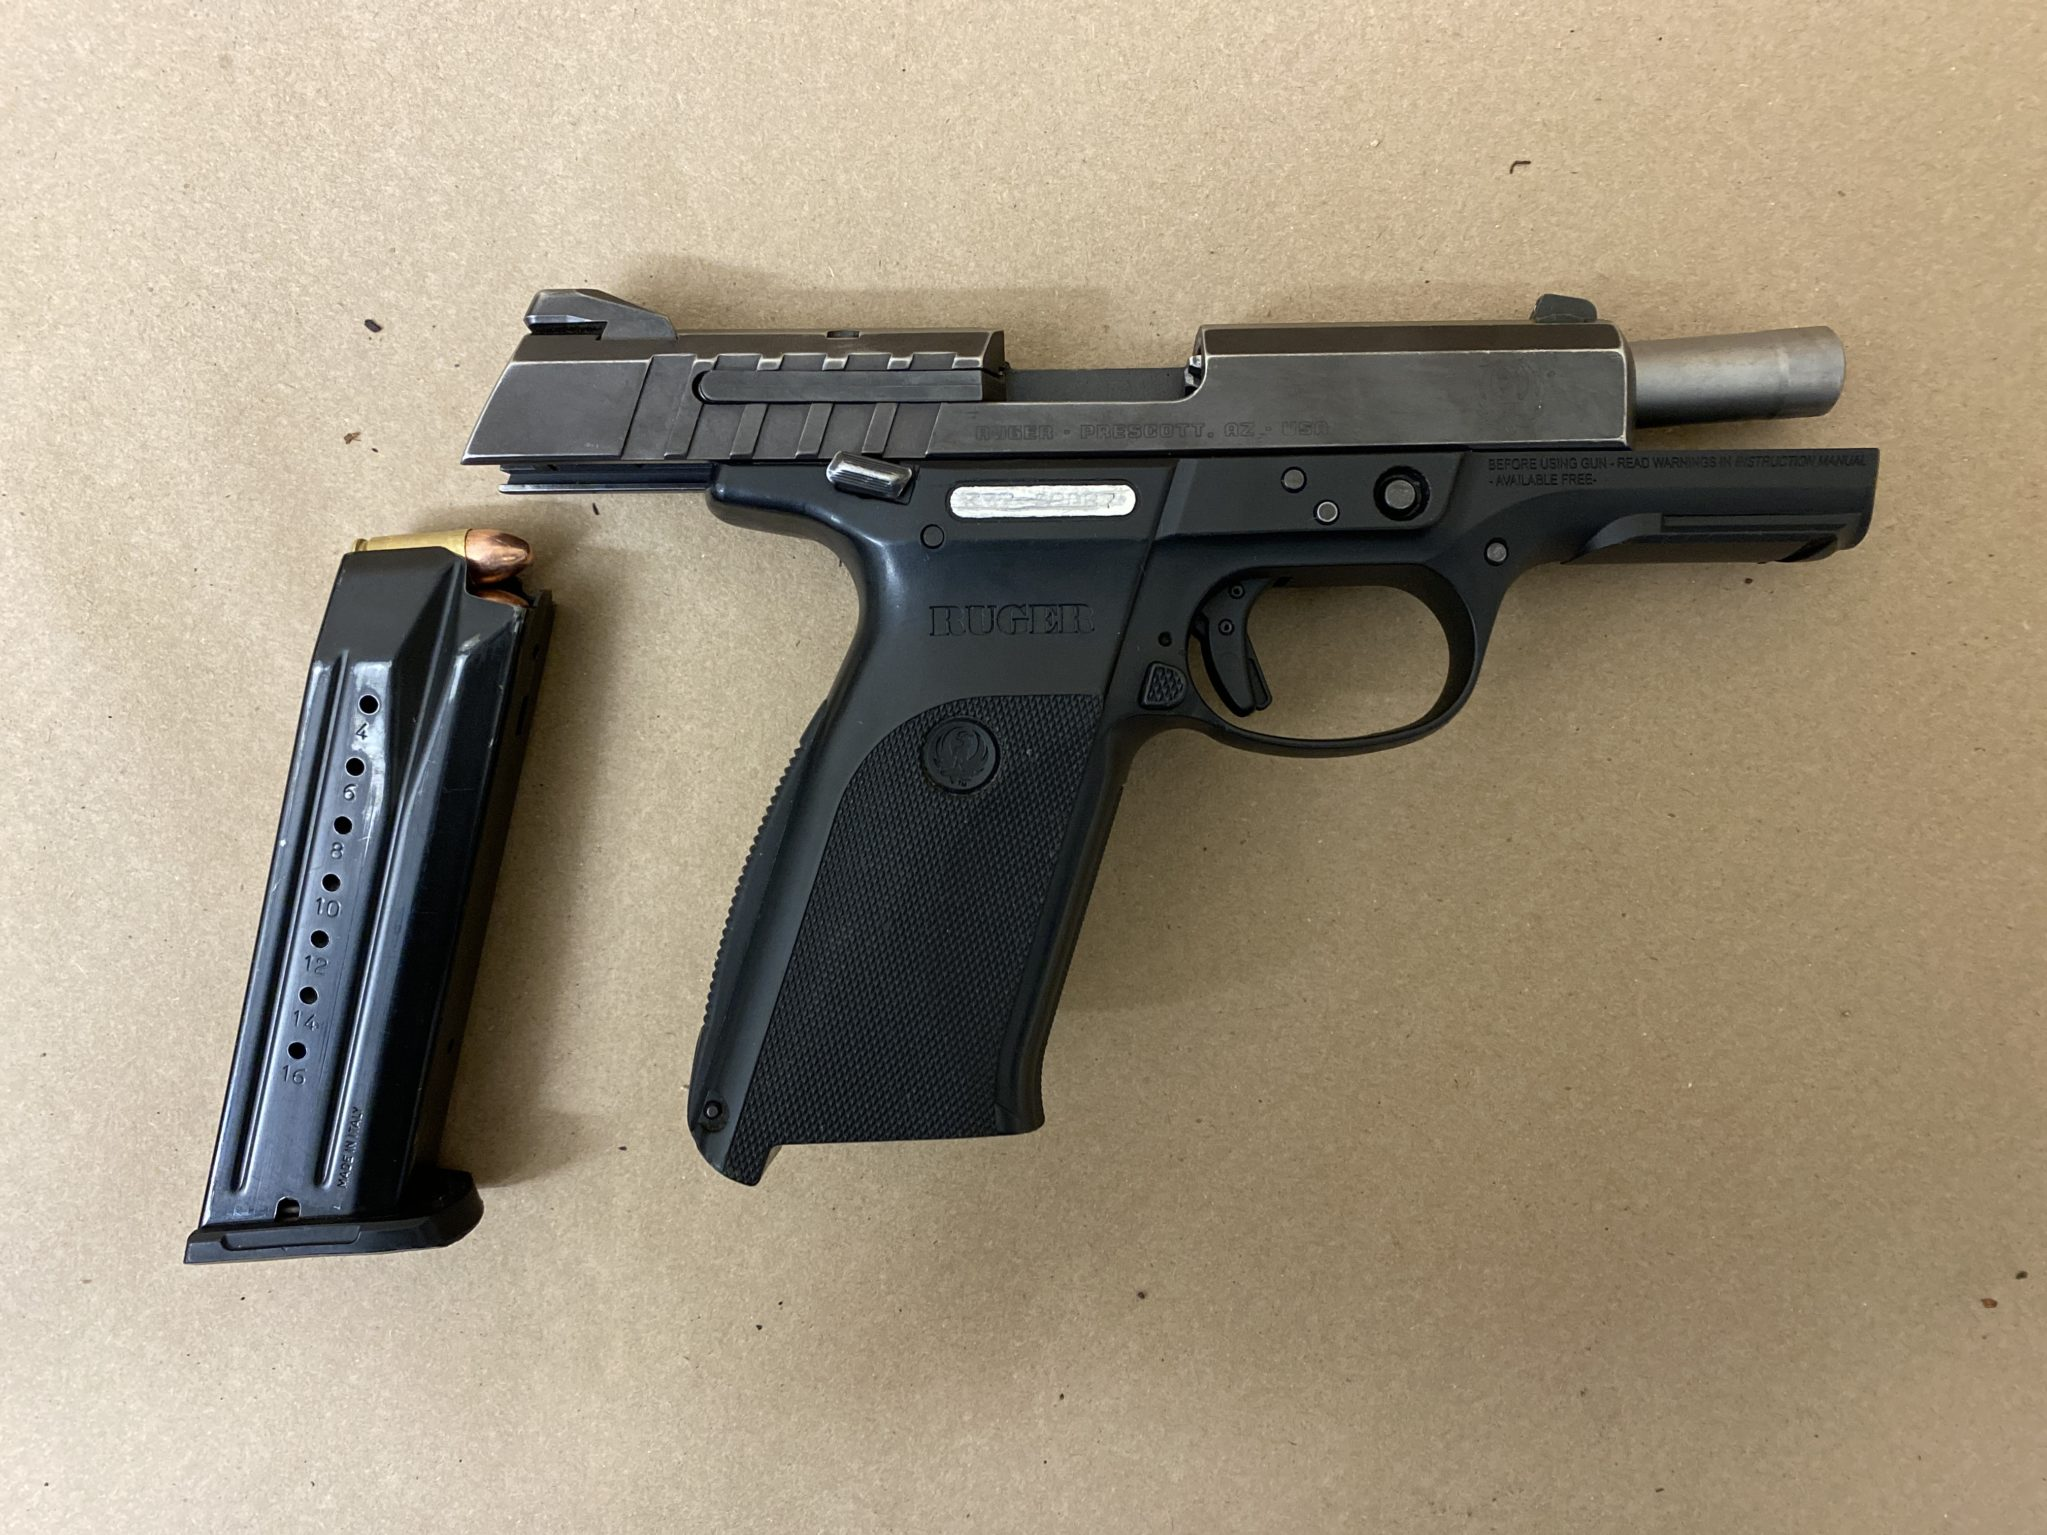 South Seattle shooting ends with 1 injured, leads to arrest and gun seized